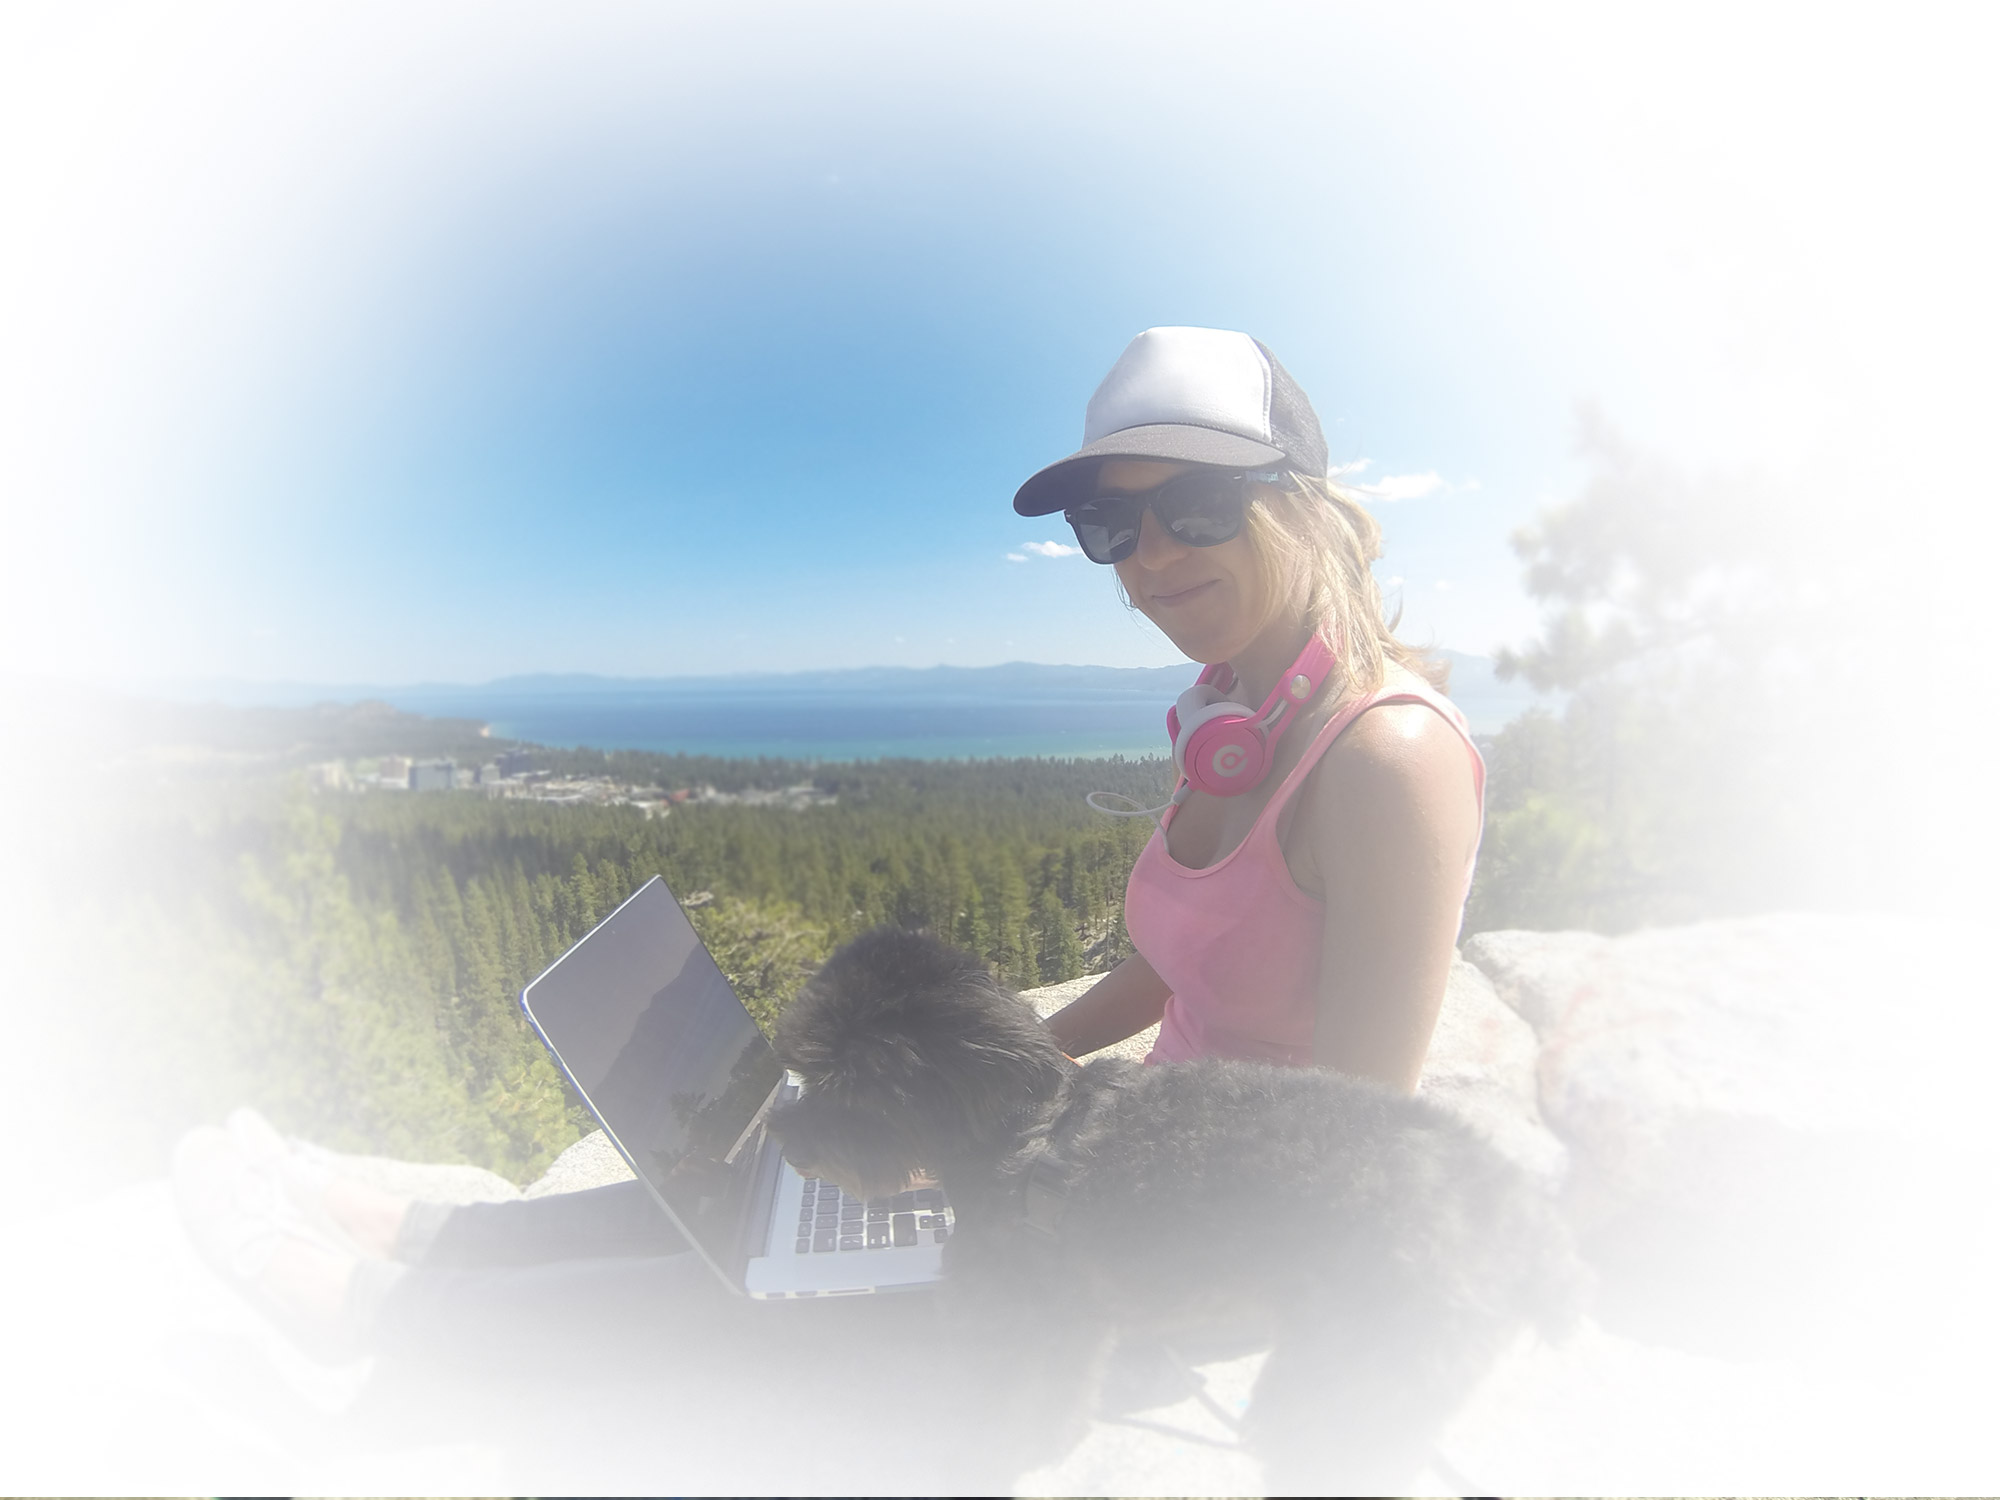 melissa-monte-professional-woman-marketer-girl-tripping-CEO-GIRL-BOSS-in-TAHOE-working-on-the-go-fade-to-white-2000x1500-v2